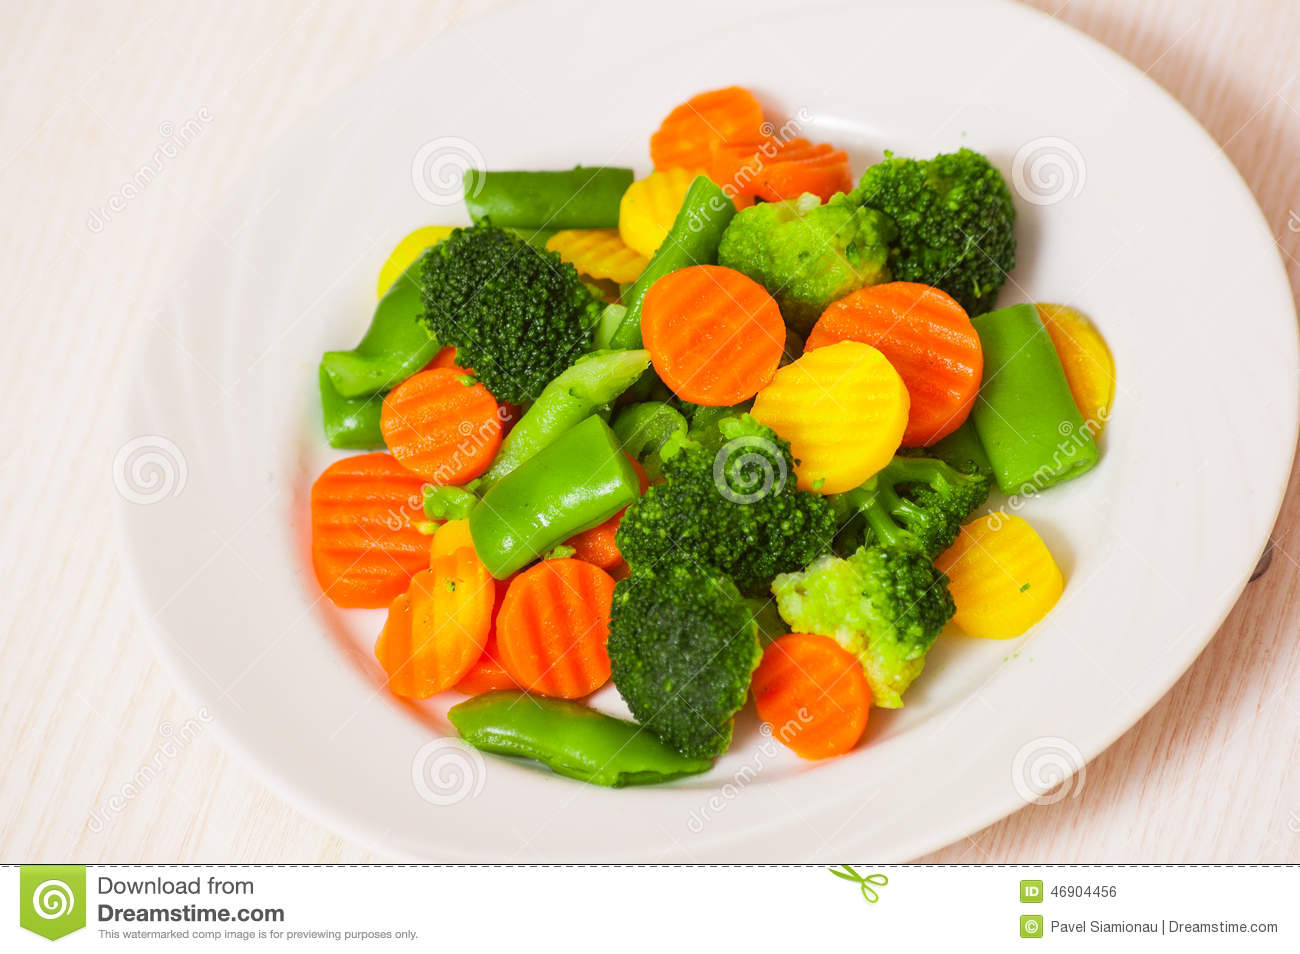 Plate Of Vegetables Clipart.